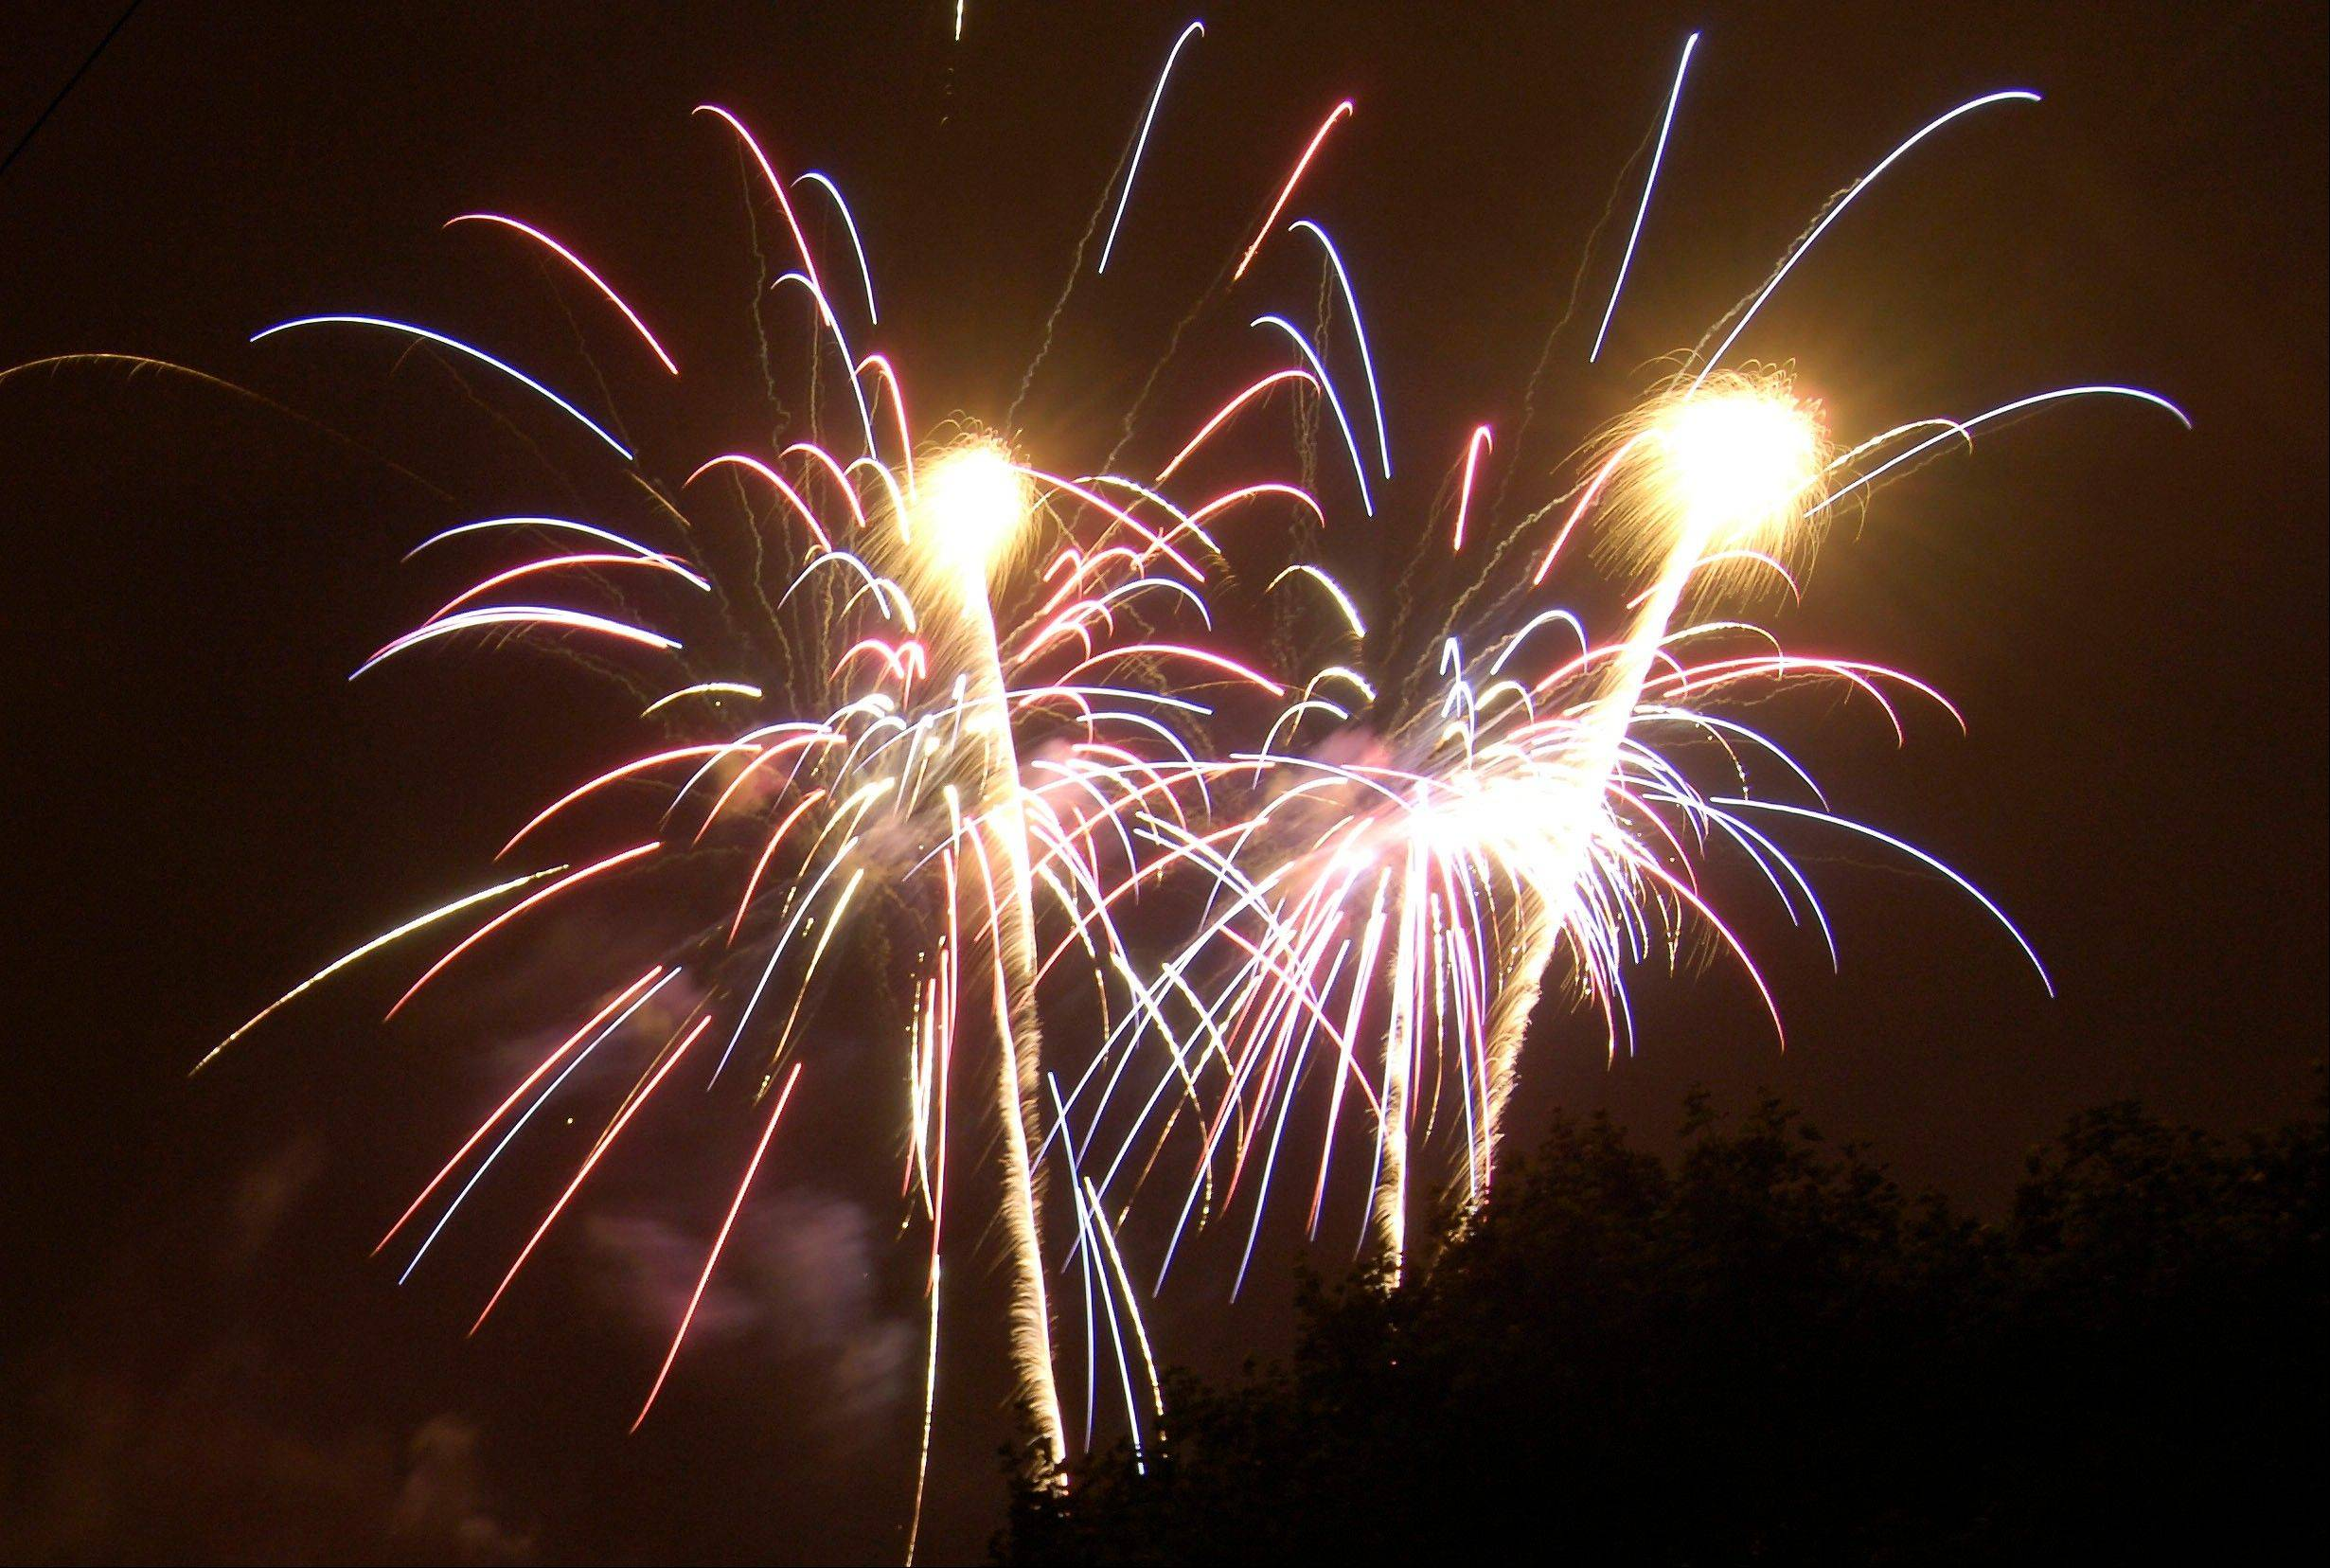 Fireworks will again explode over the skies of Wheeling to mark Independence Day this year. Village officials announced Monday they will hold a celebration July 3 outside village hall.